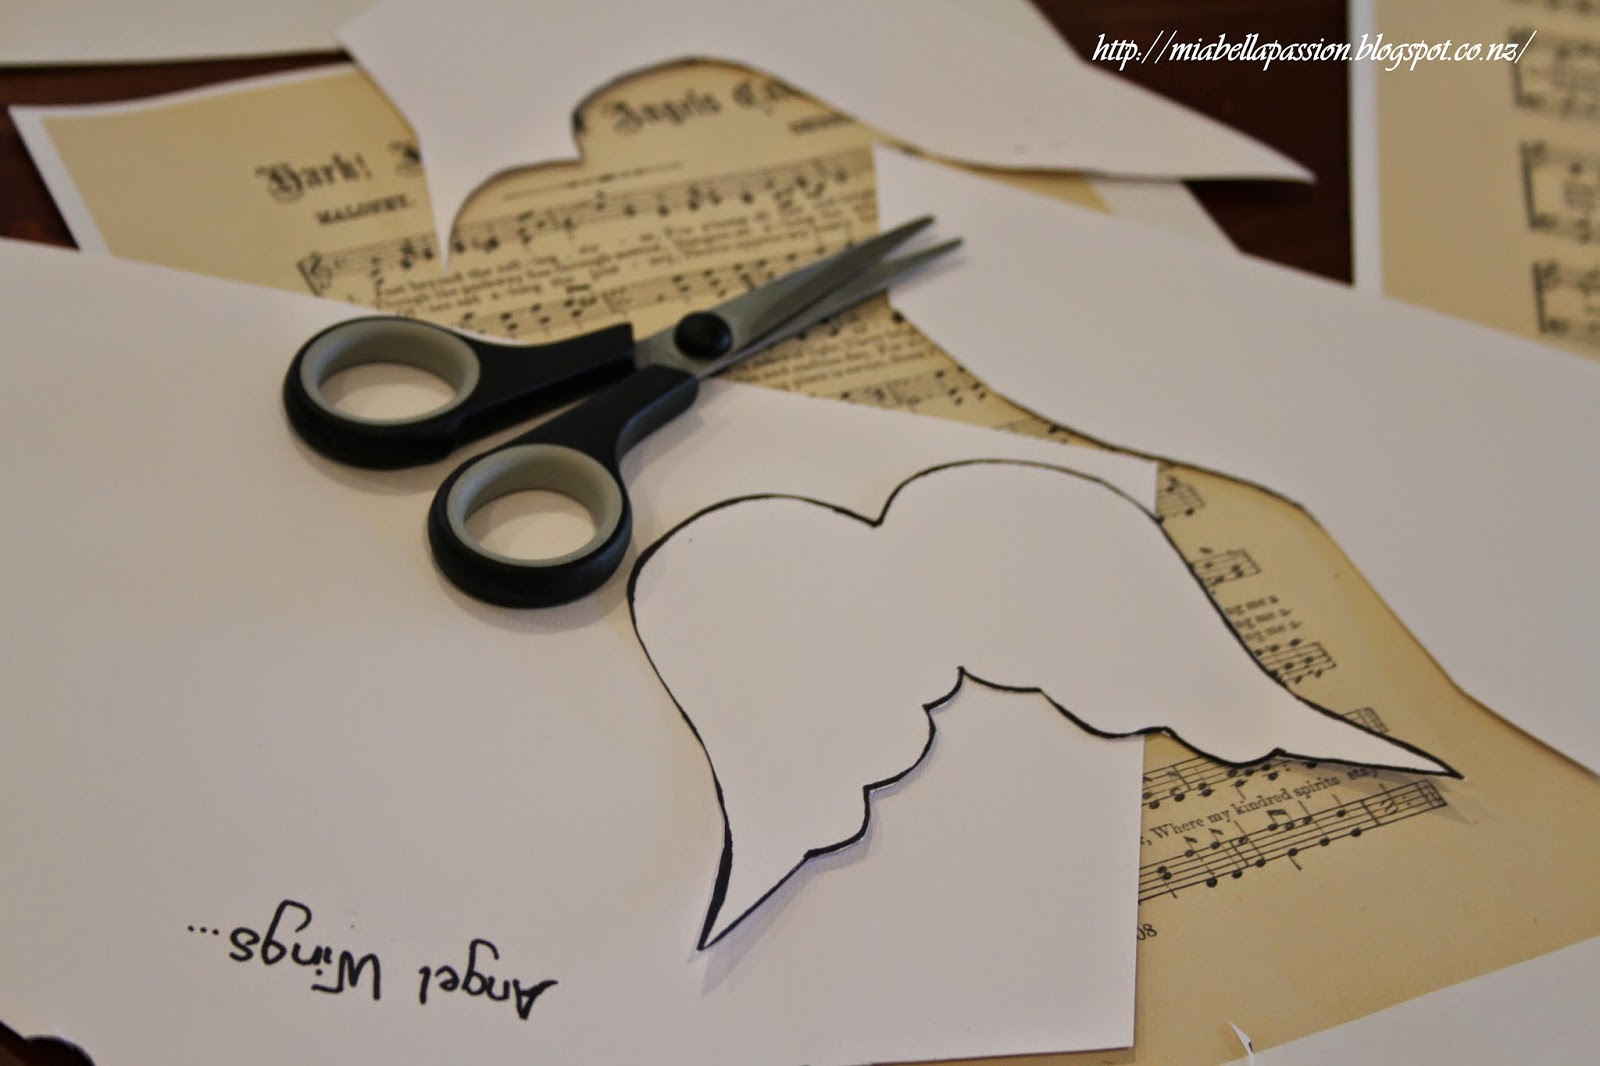 Mia Bella Passions: Music Sheet Angels Wings Just for Christmas...